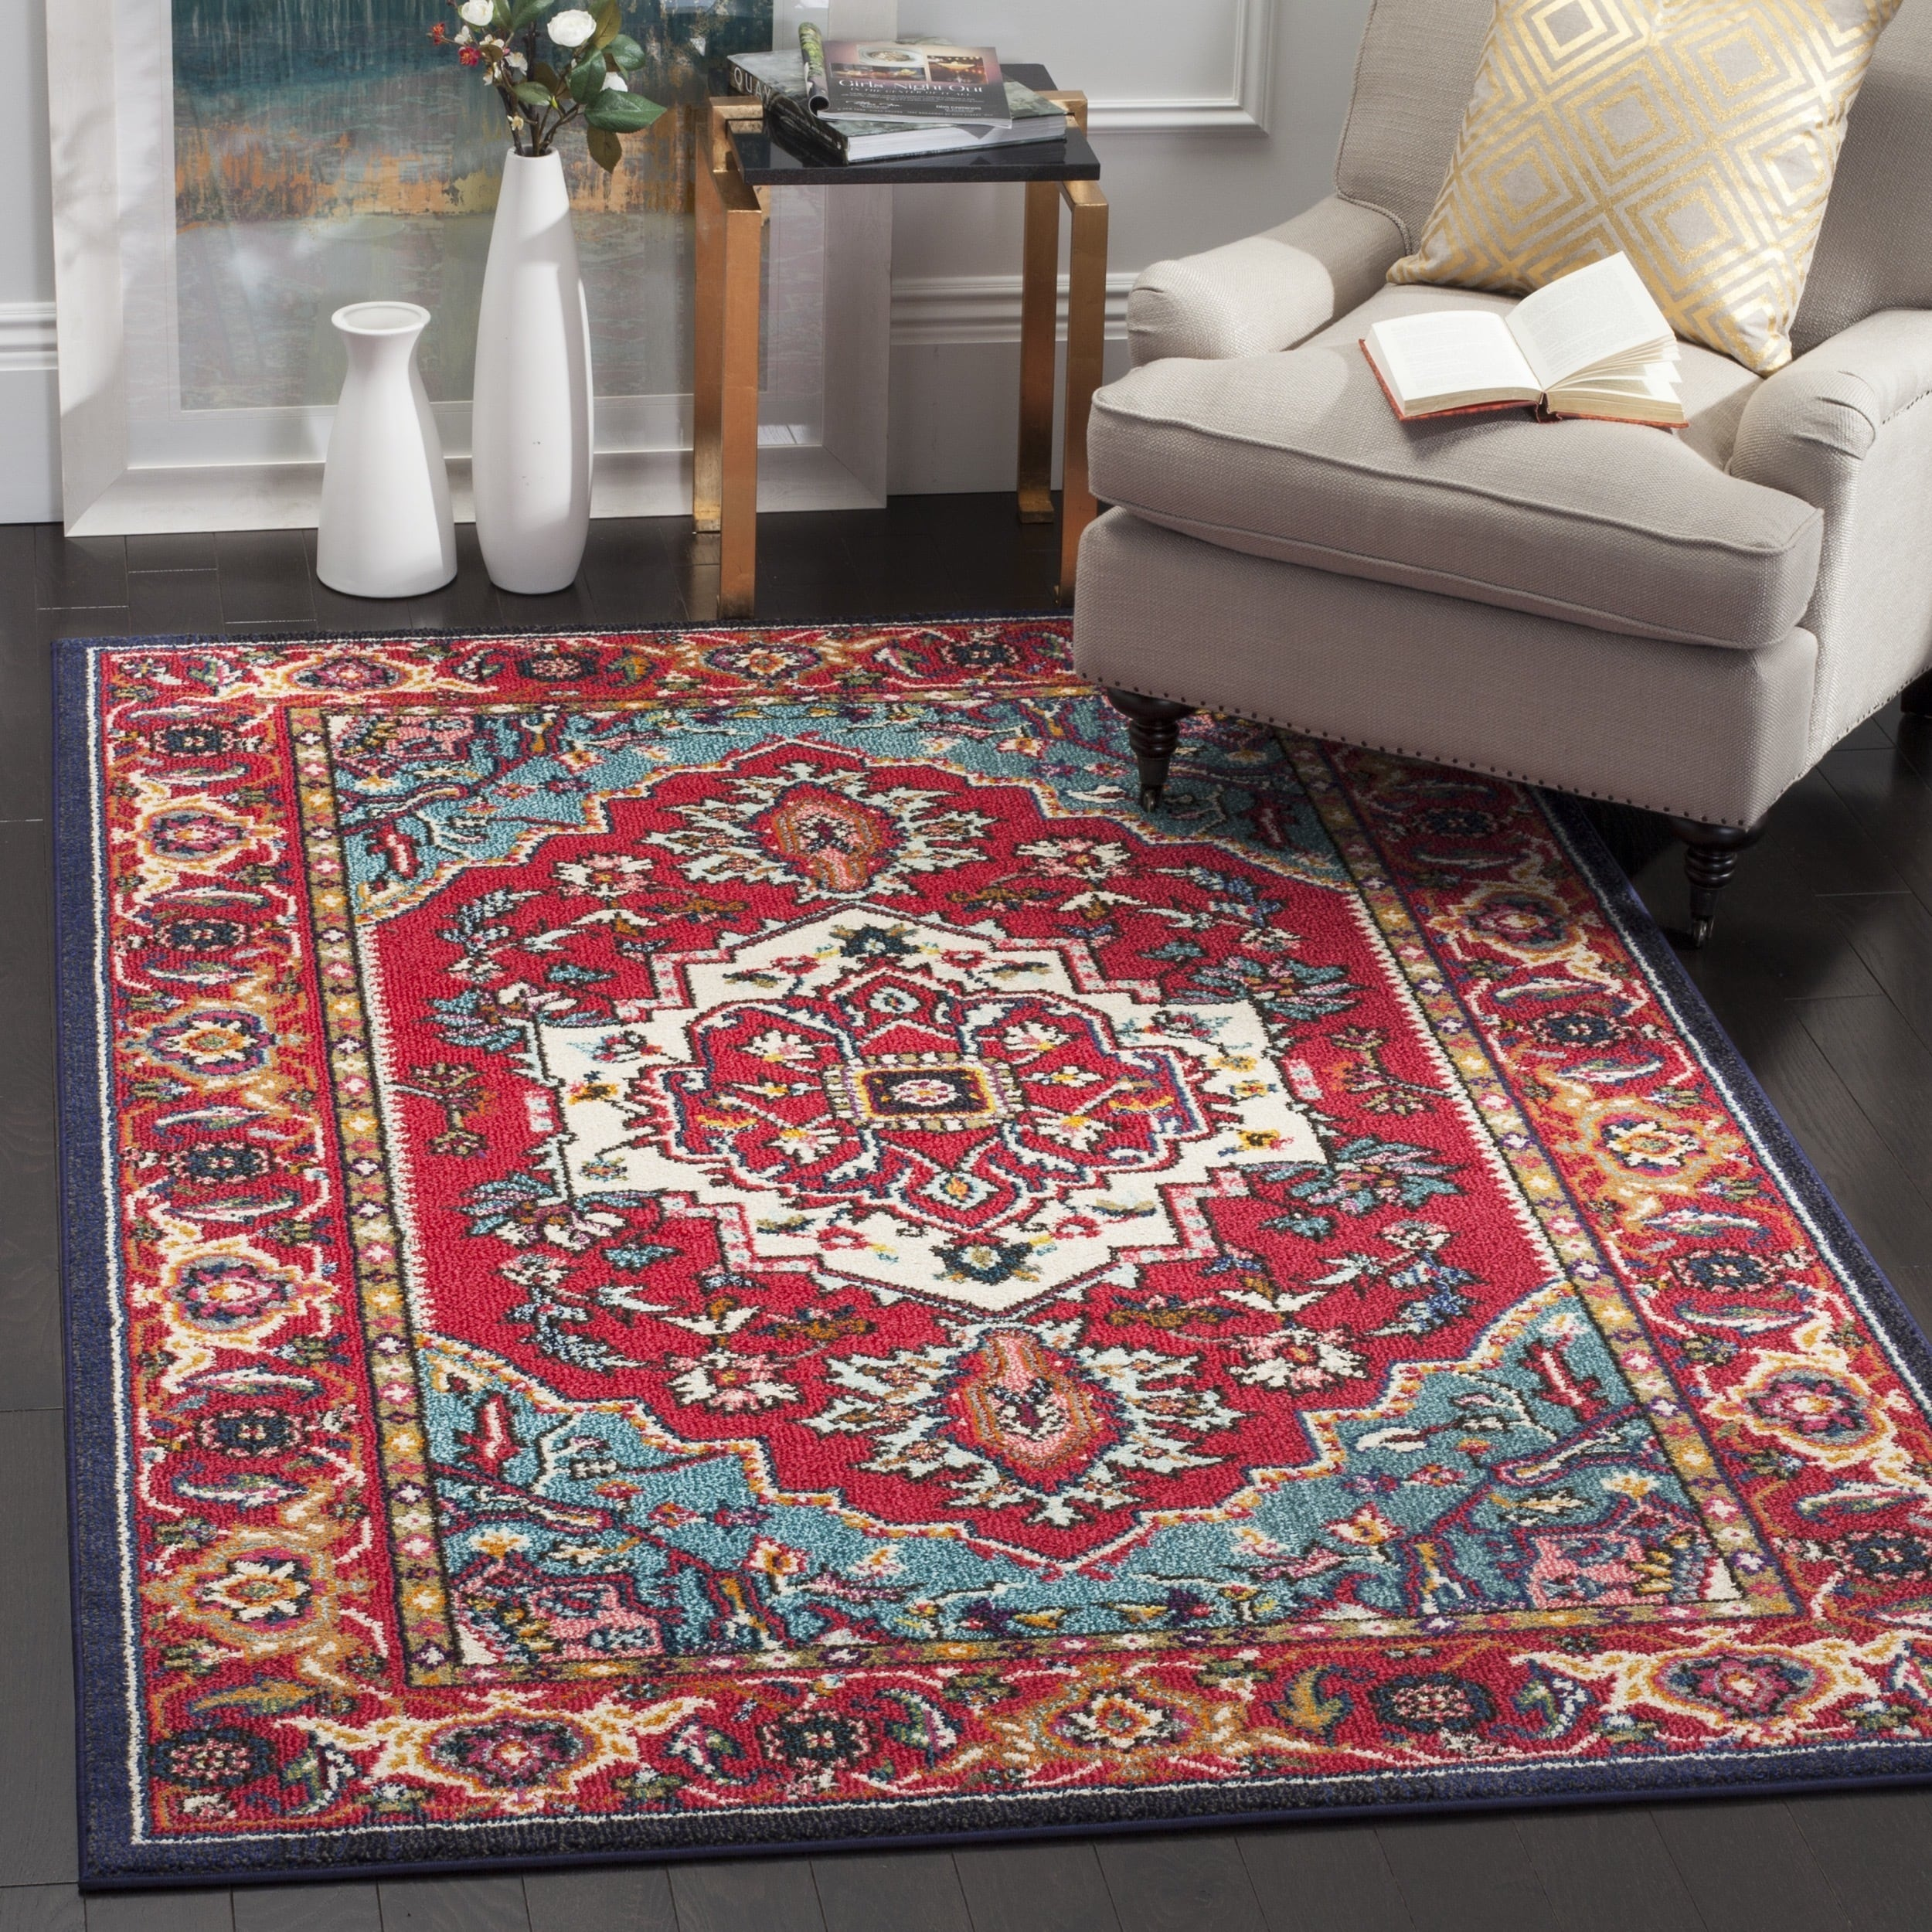 ft faded x bohemian product mpw vintage rug home dsc carpet small